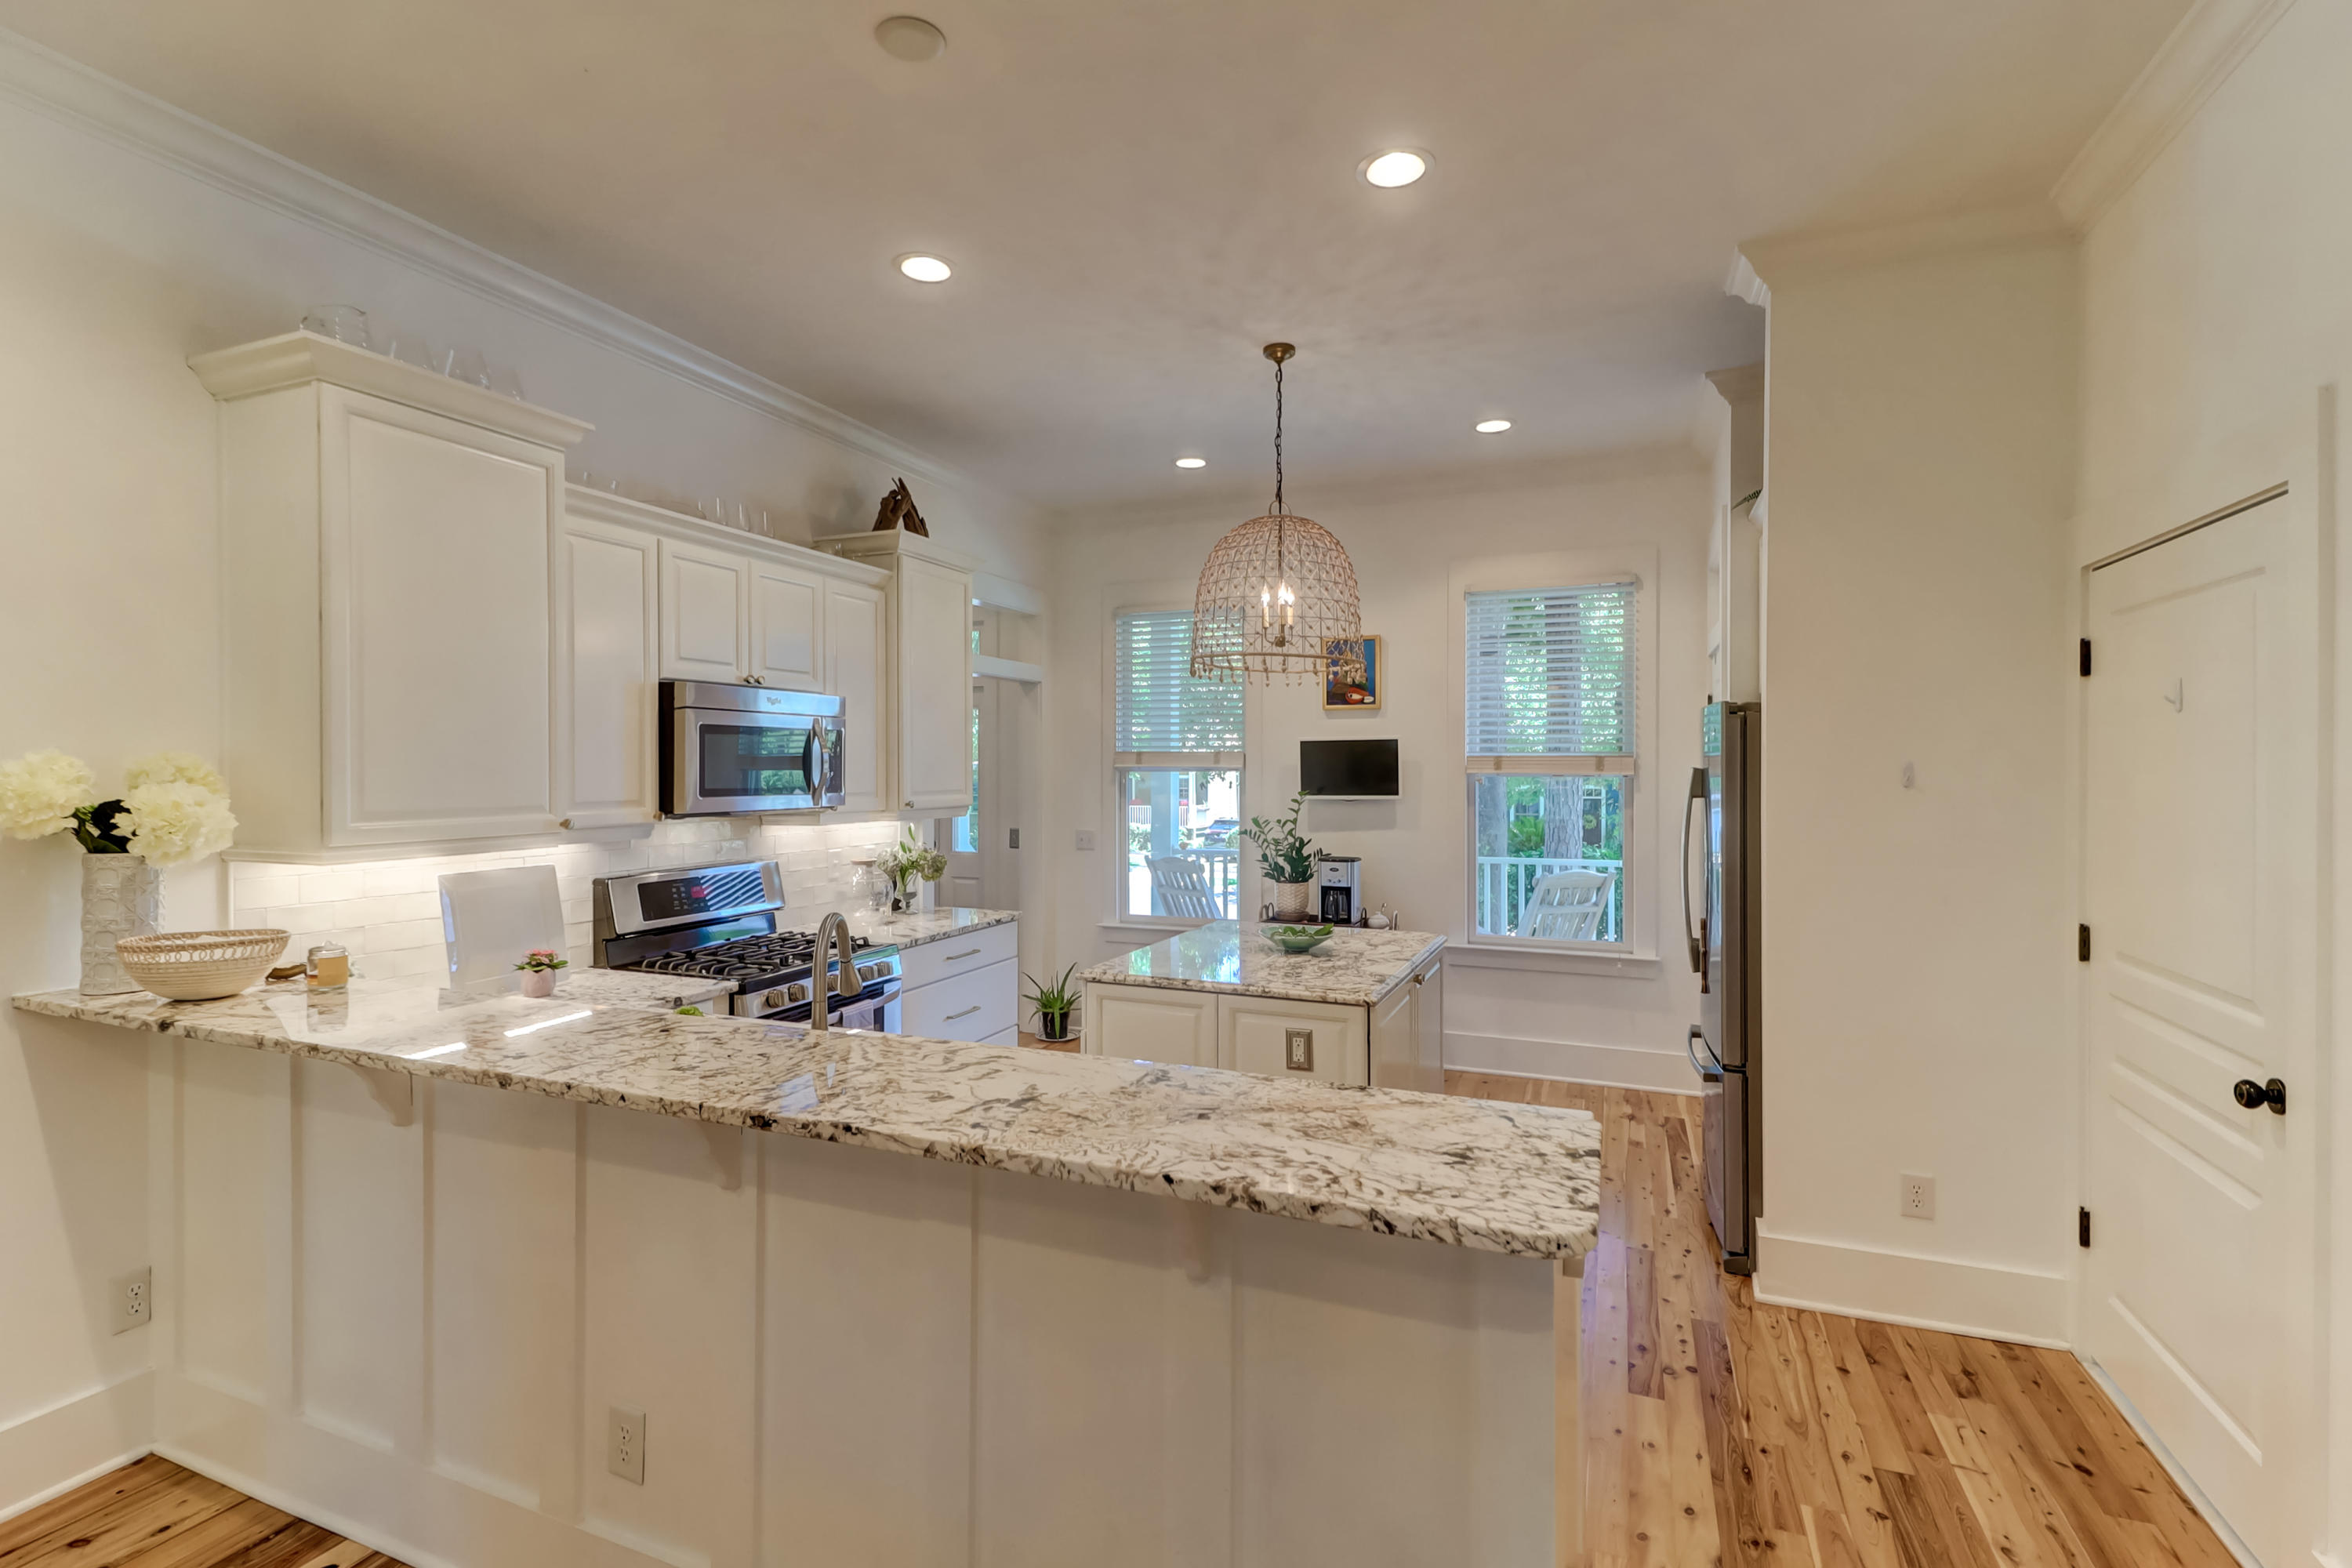 The Villages In St Johns Woods Homes For Sale - 5056 Coral Reef Dr, Johns Island, SC - 62